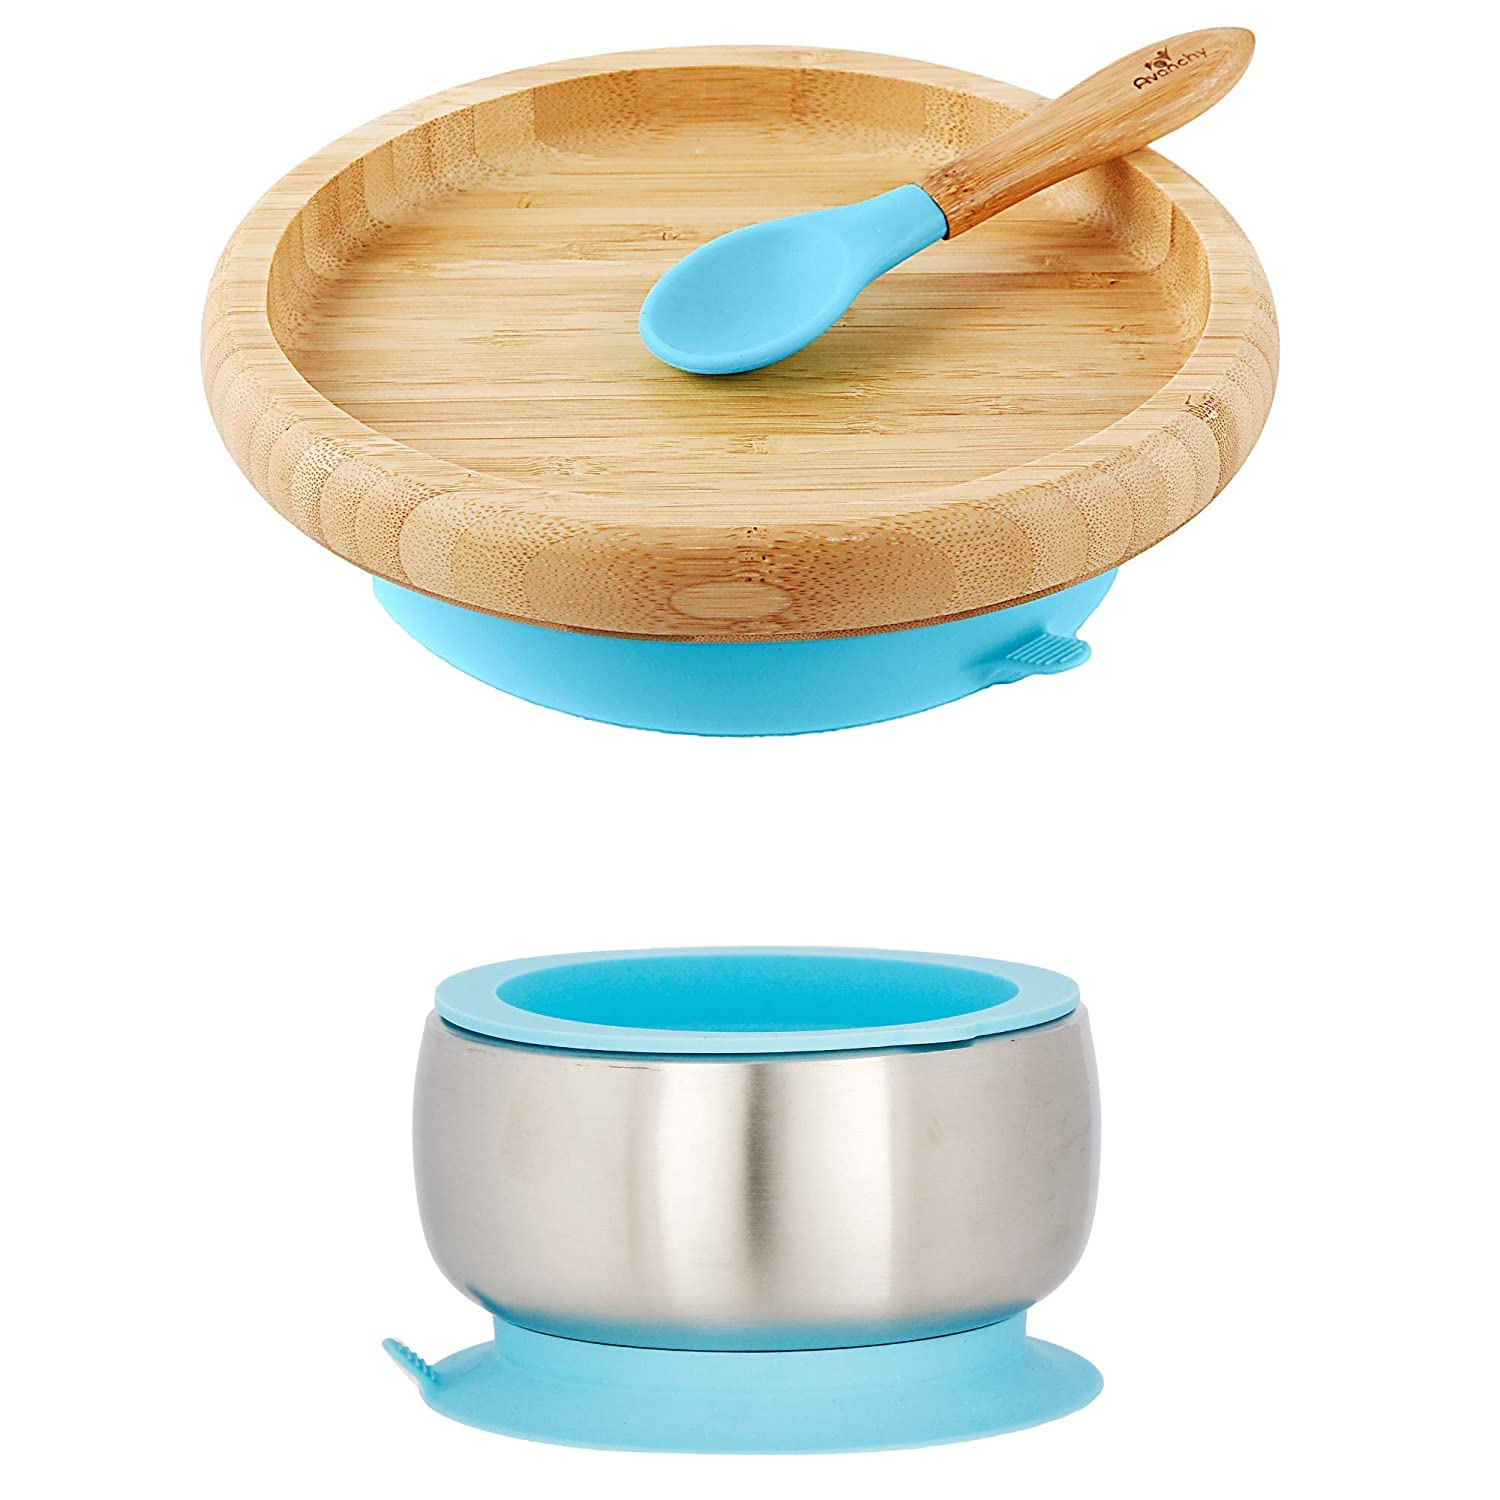 Sustainable Gift Set Blue - Baby Shower, Baby Registry, Home Set & More. Baby Girl, Baby Boy, Unisex. Stainless Steel Baby Bowl Set + Bamboo Classic Plate Set. BPA Free